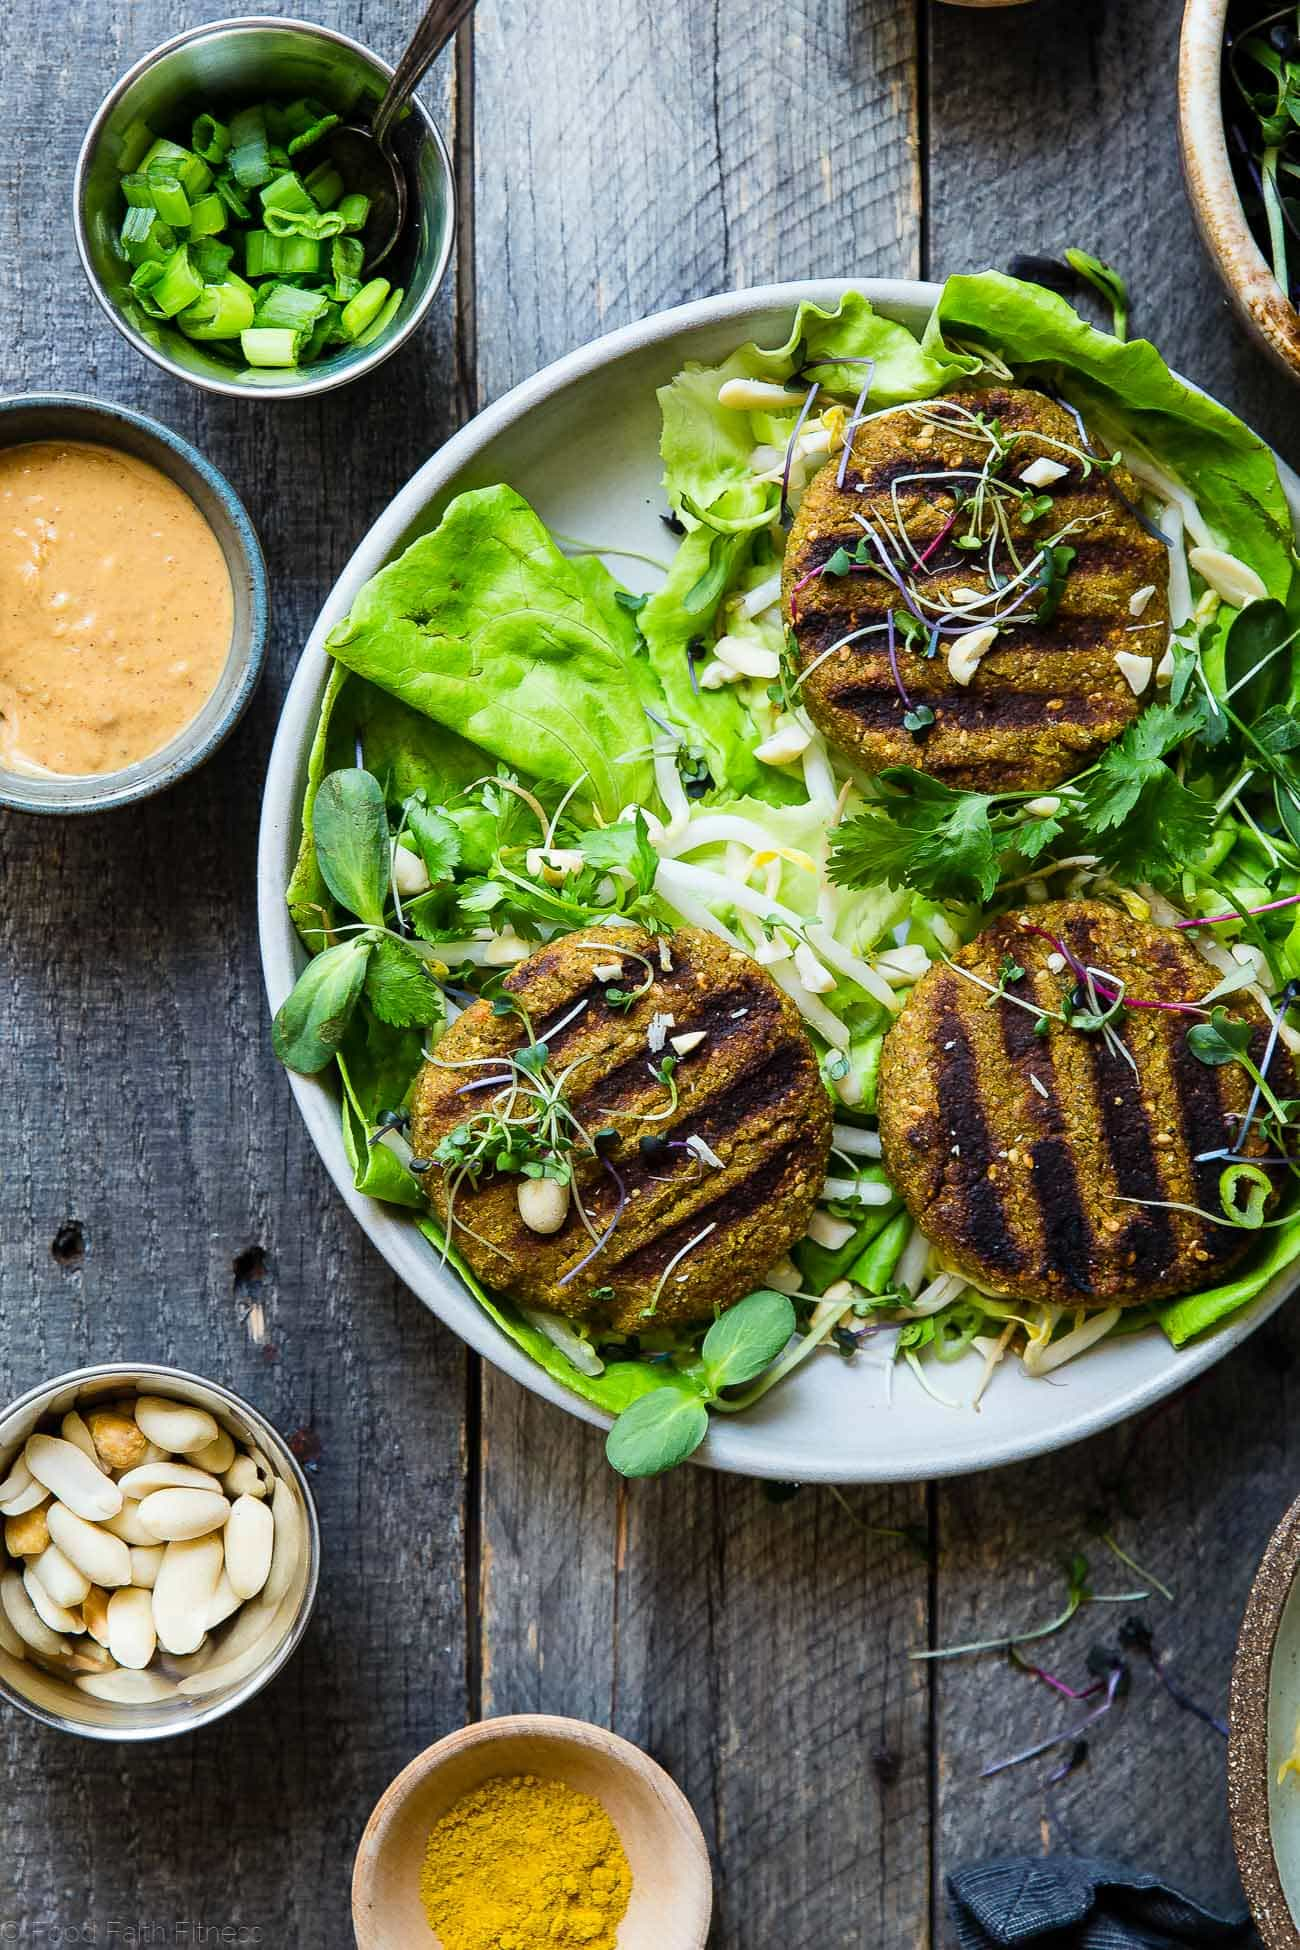 Low Carb Thai Curry Grilled Veggie Burgers - A vegan veggie burger that you can actually grill! They have a Thai peanut twist and curry kick and make a tasty paleo, whole30 and gluten free Summer dinner for under 250 calories! | Foodfaithfitness.com | @FoodFaithFit